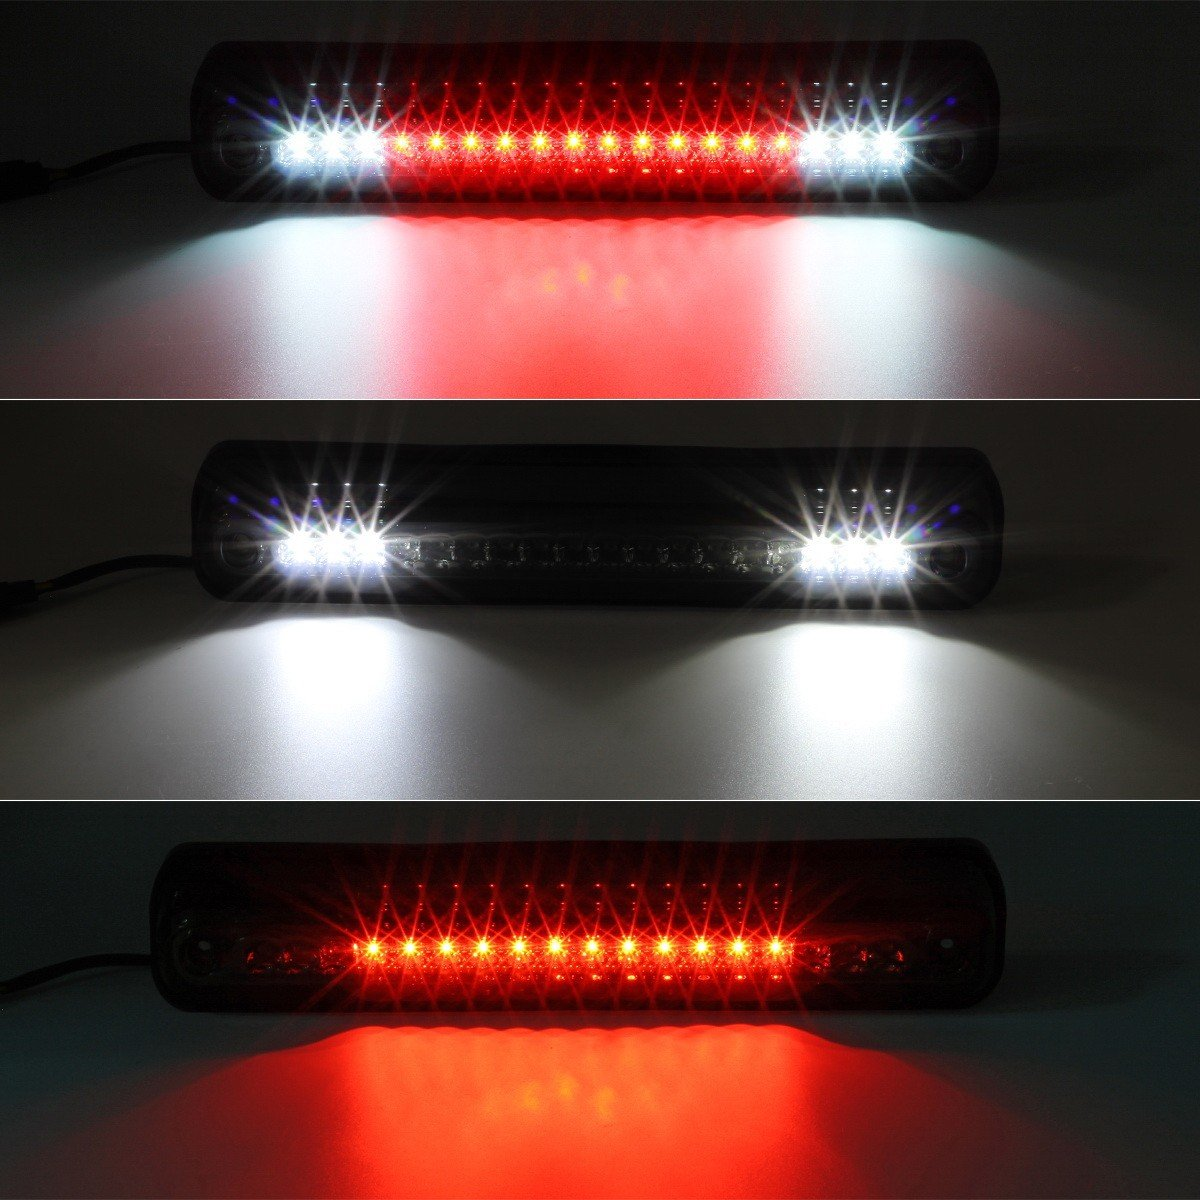 Partsam Third Brake Light Replacement For 1994 1999 Gmc Wiring Chevy C K 1500 2500 3500 Red White Led Smoke Lens High Mount 3rd Rear Tail